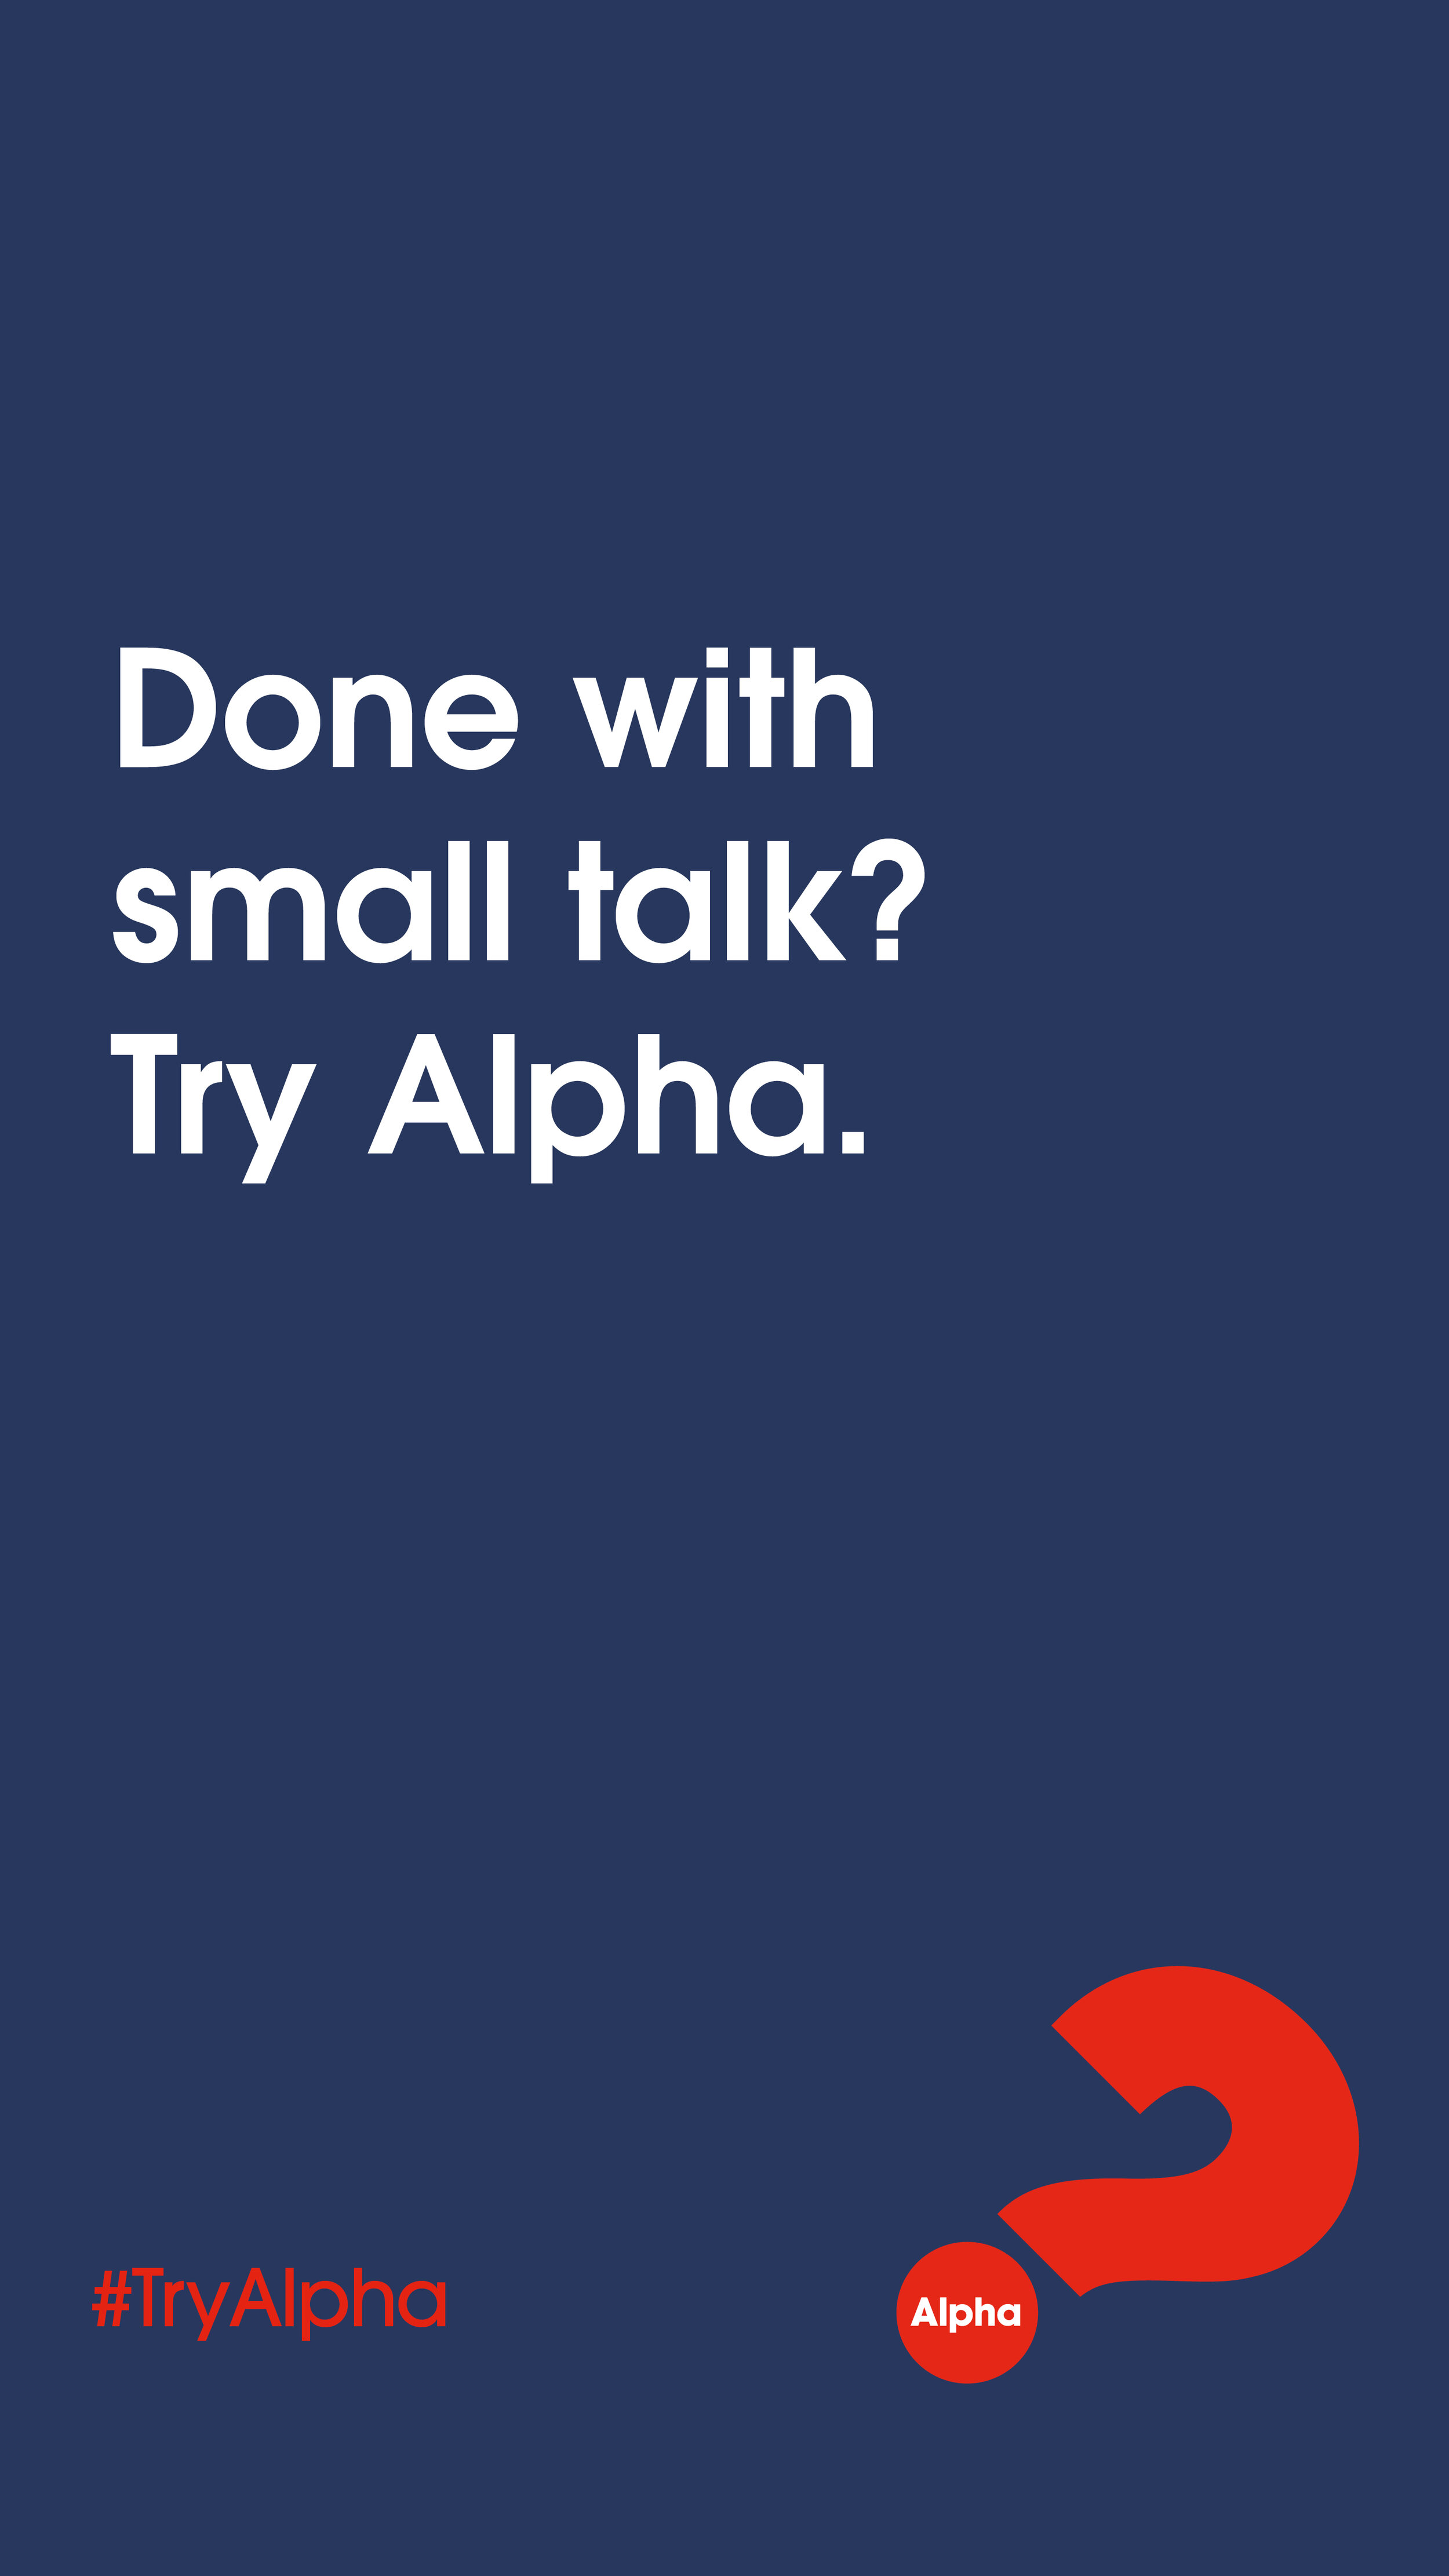 Alpha_Invite 2019_Instagram Stories_Done with small talk2.jpg